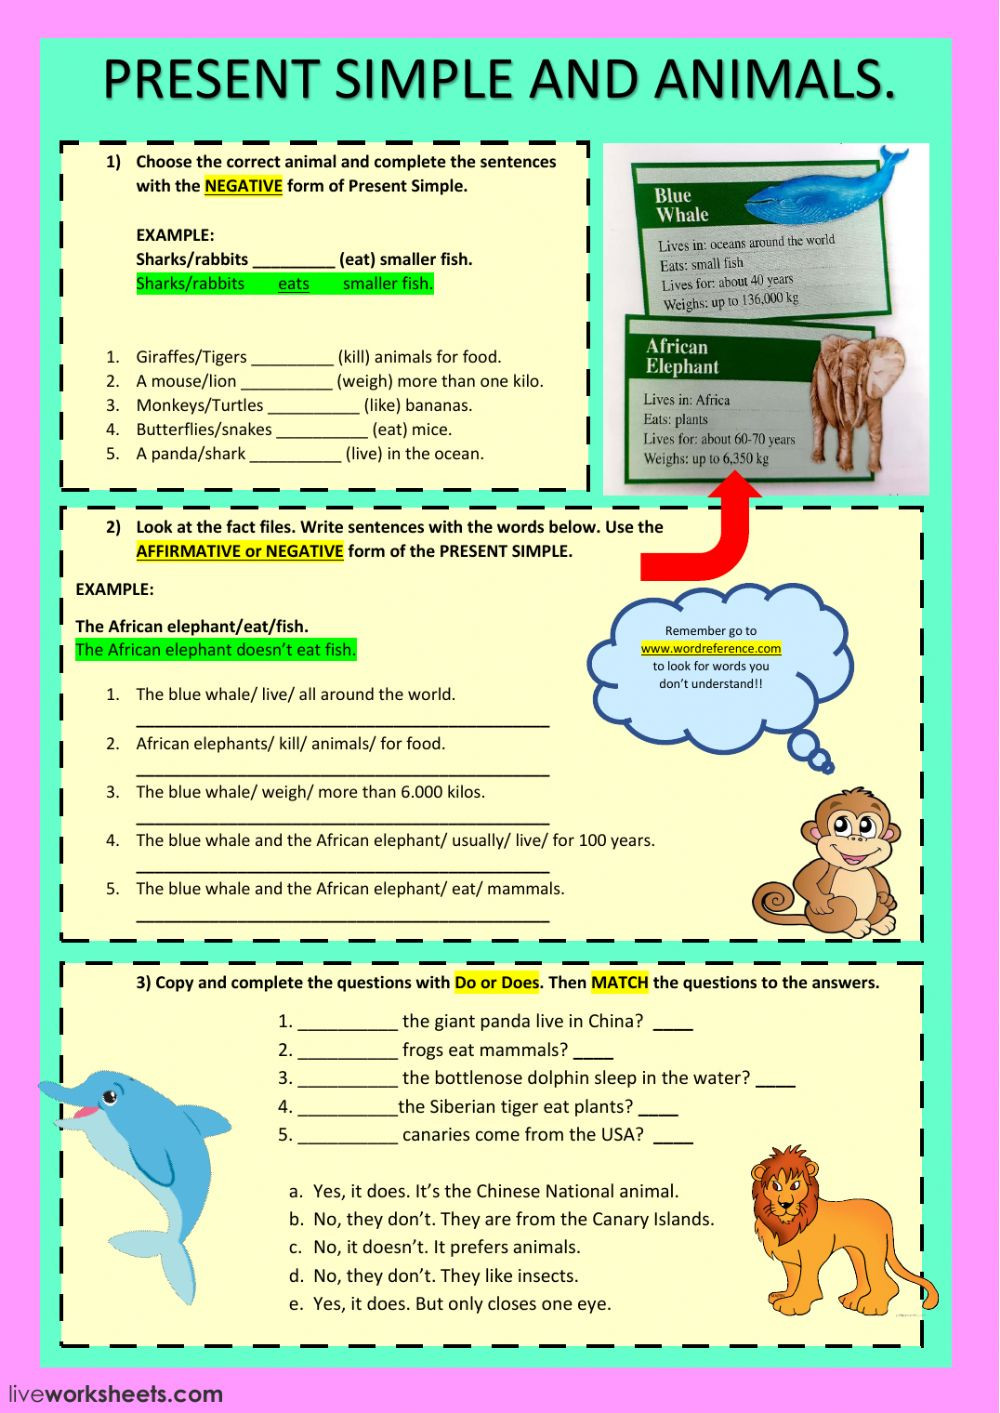 Present simple and animals worksheet